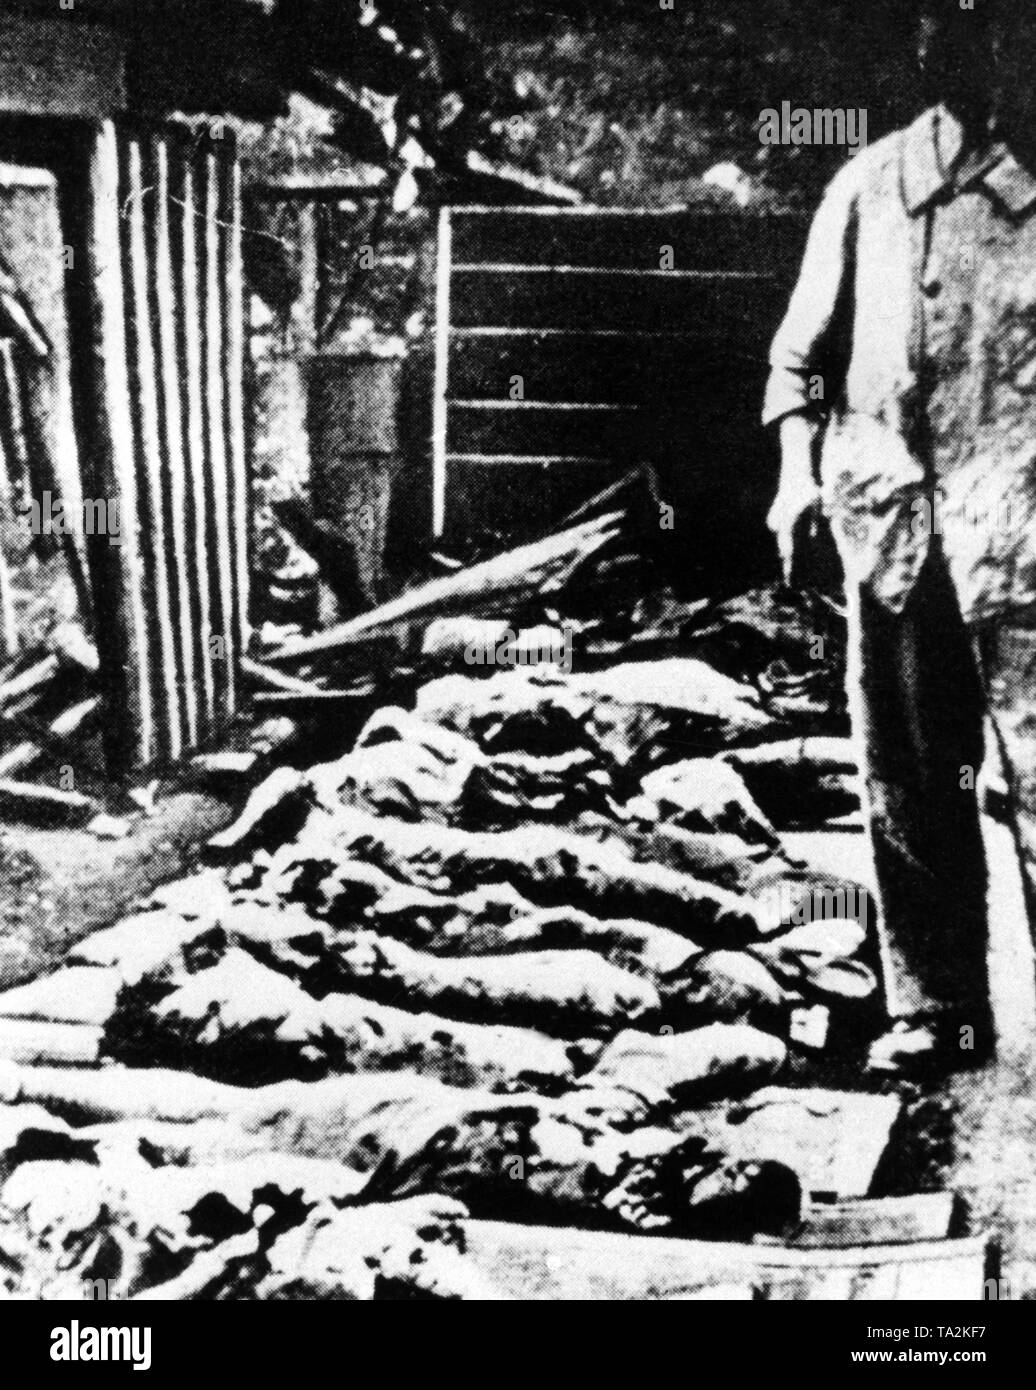 War crime in Oradour: Picture shows burned dead bodies in the church of Oradour. - Stock Image